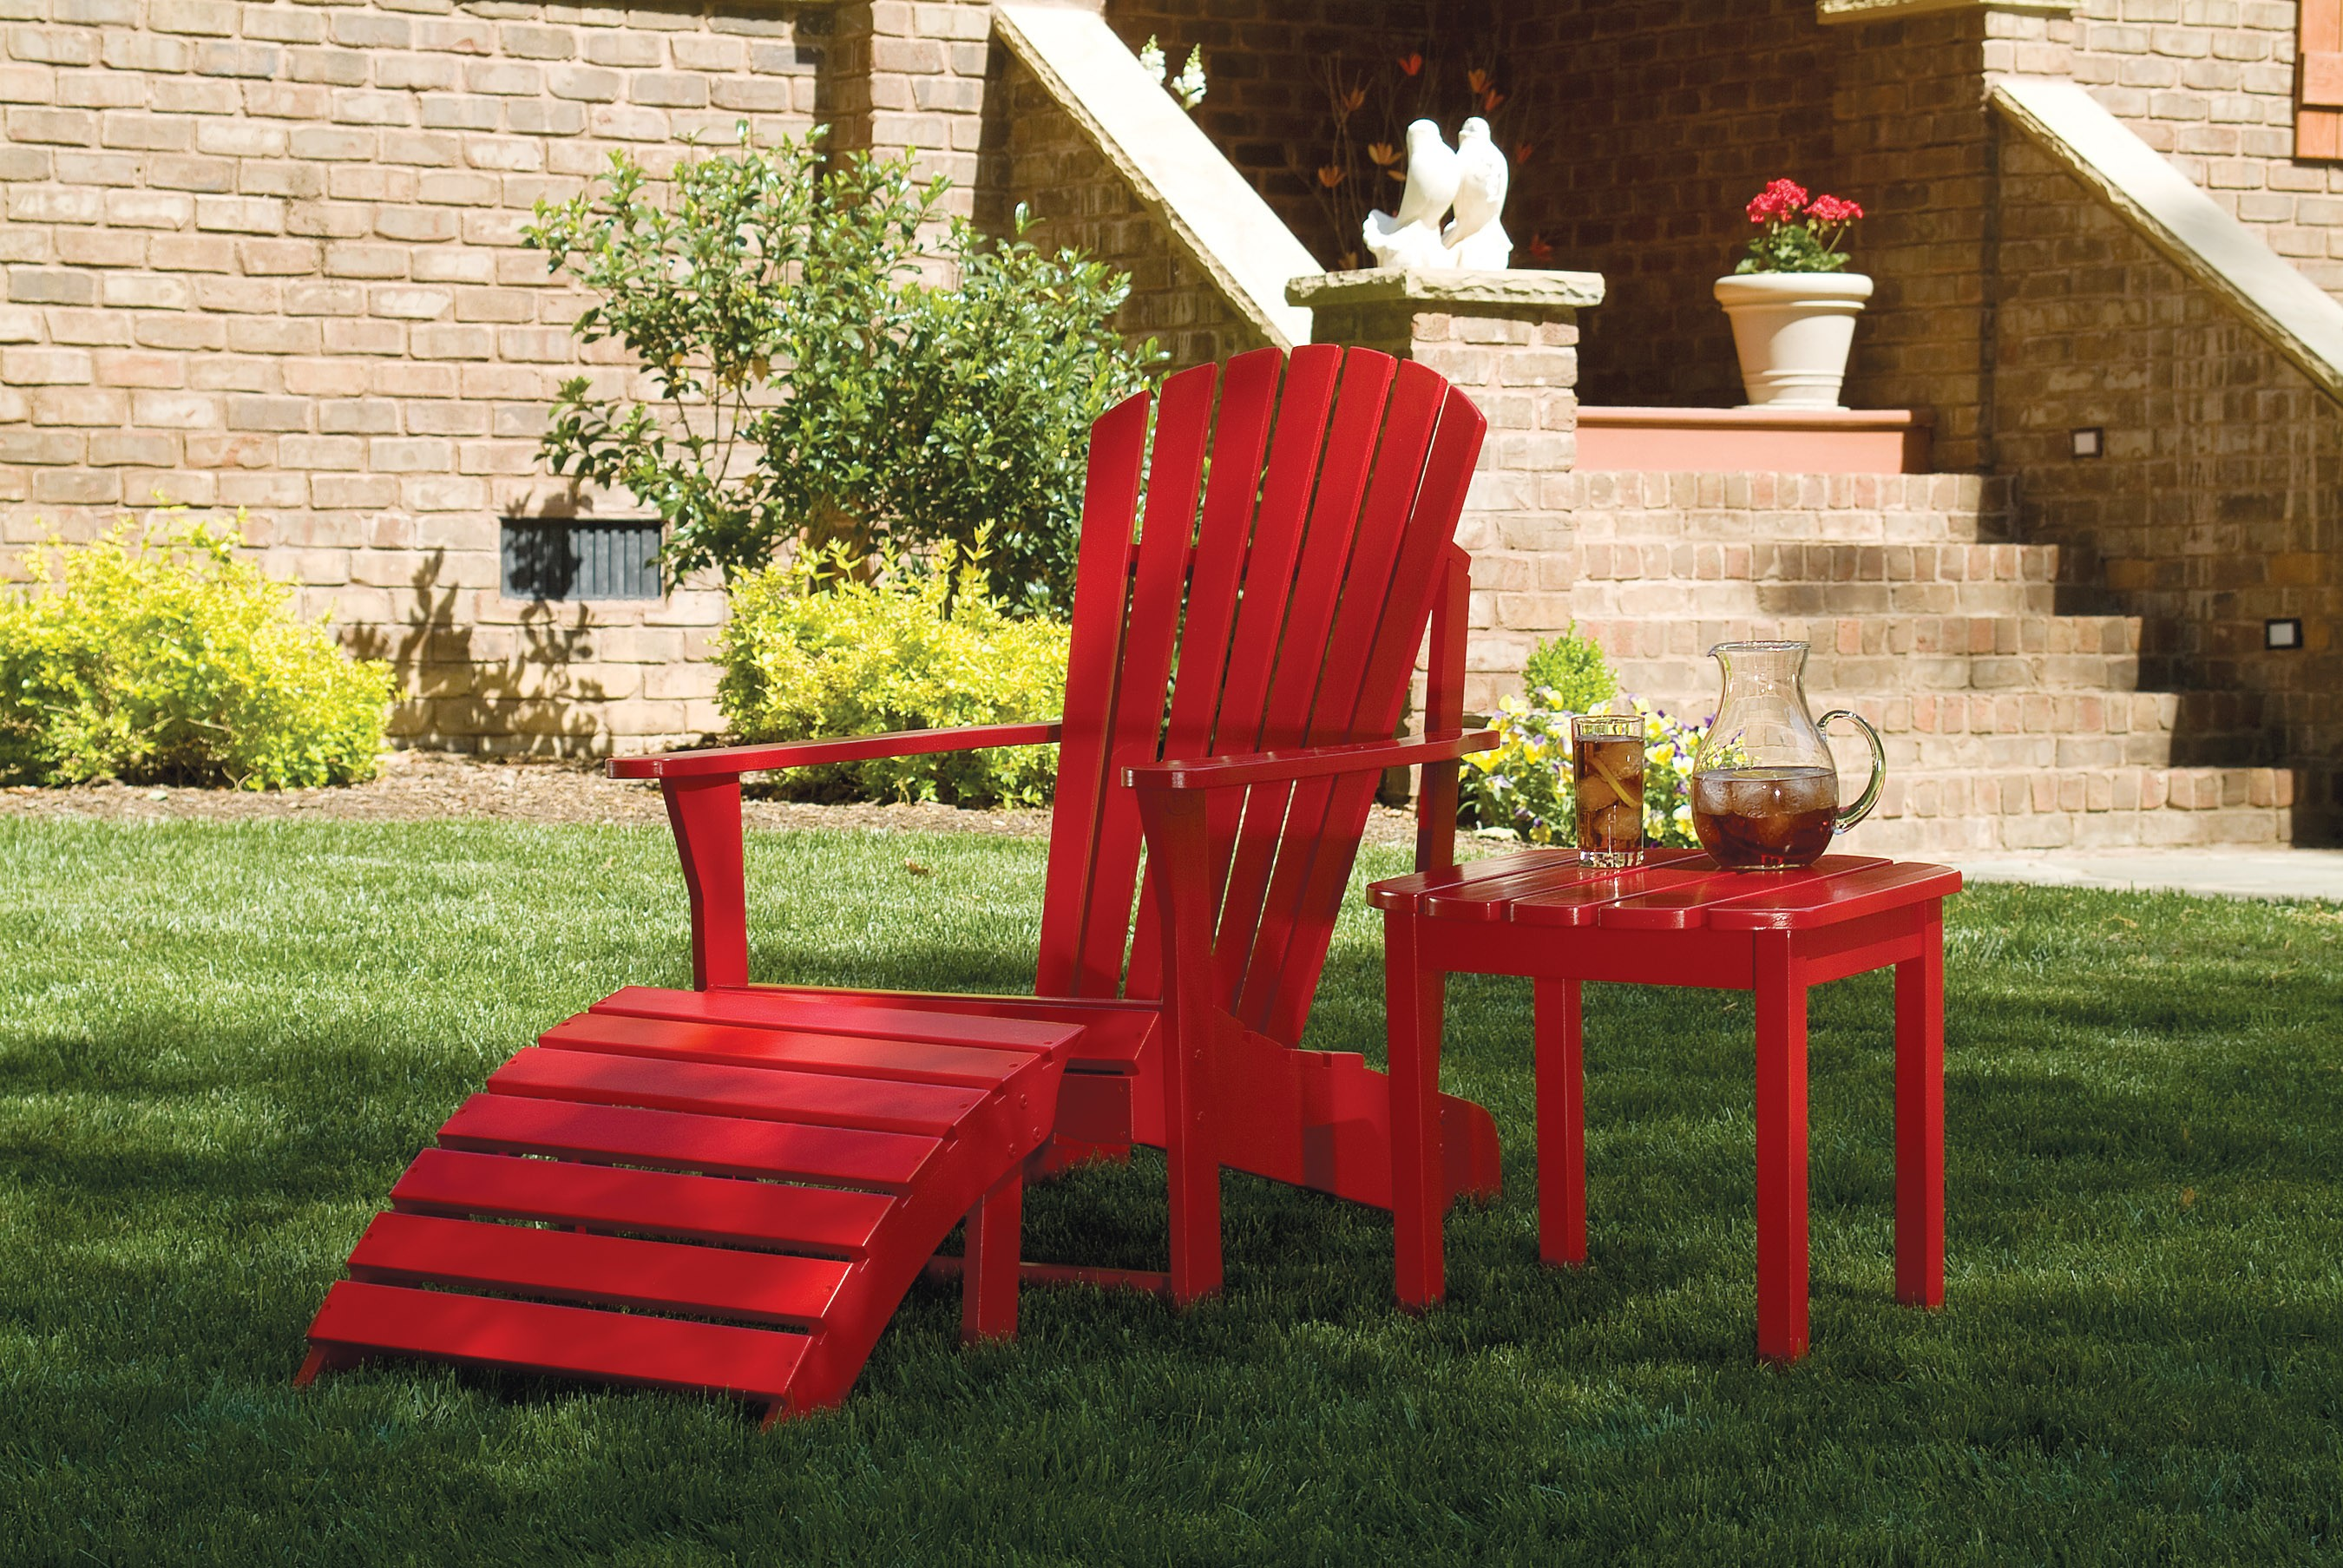 Teak Adirondack Chairs in red plus ottoman and matching table for patio decor ideas